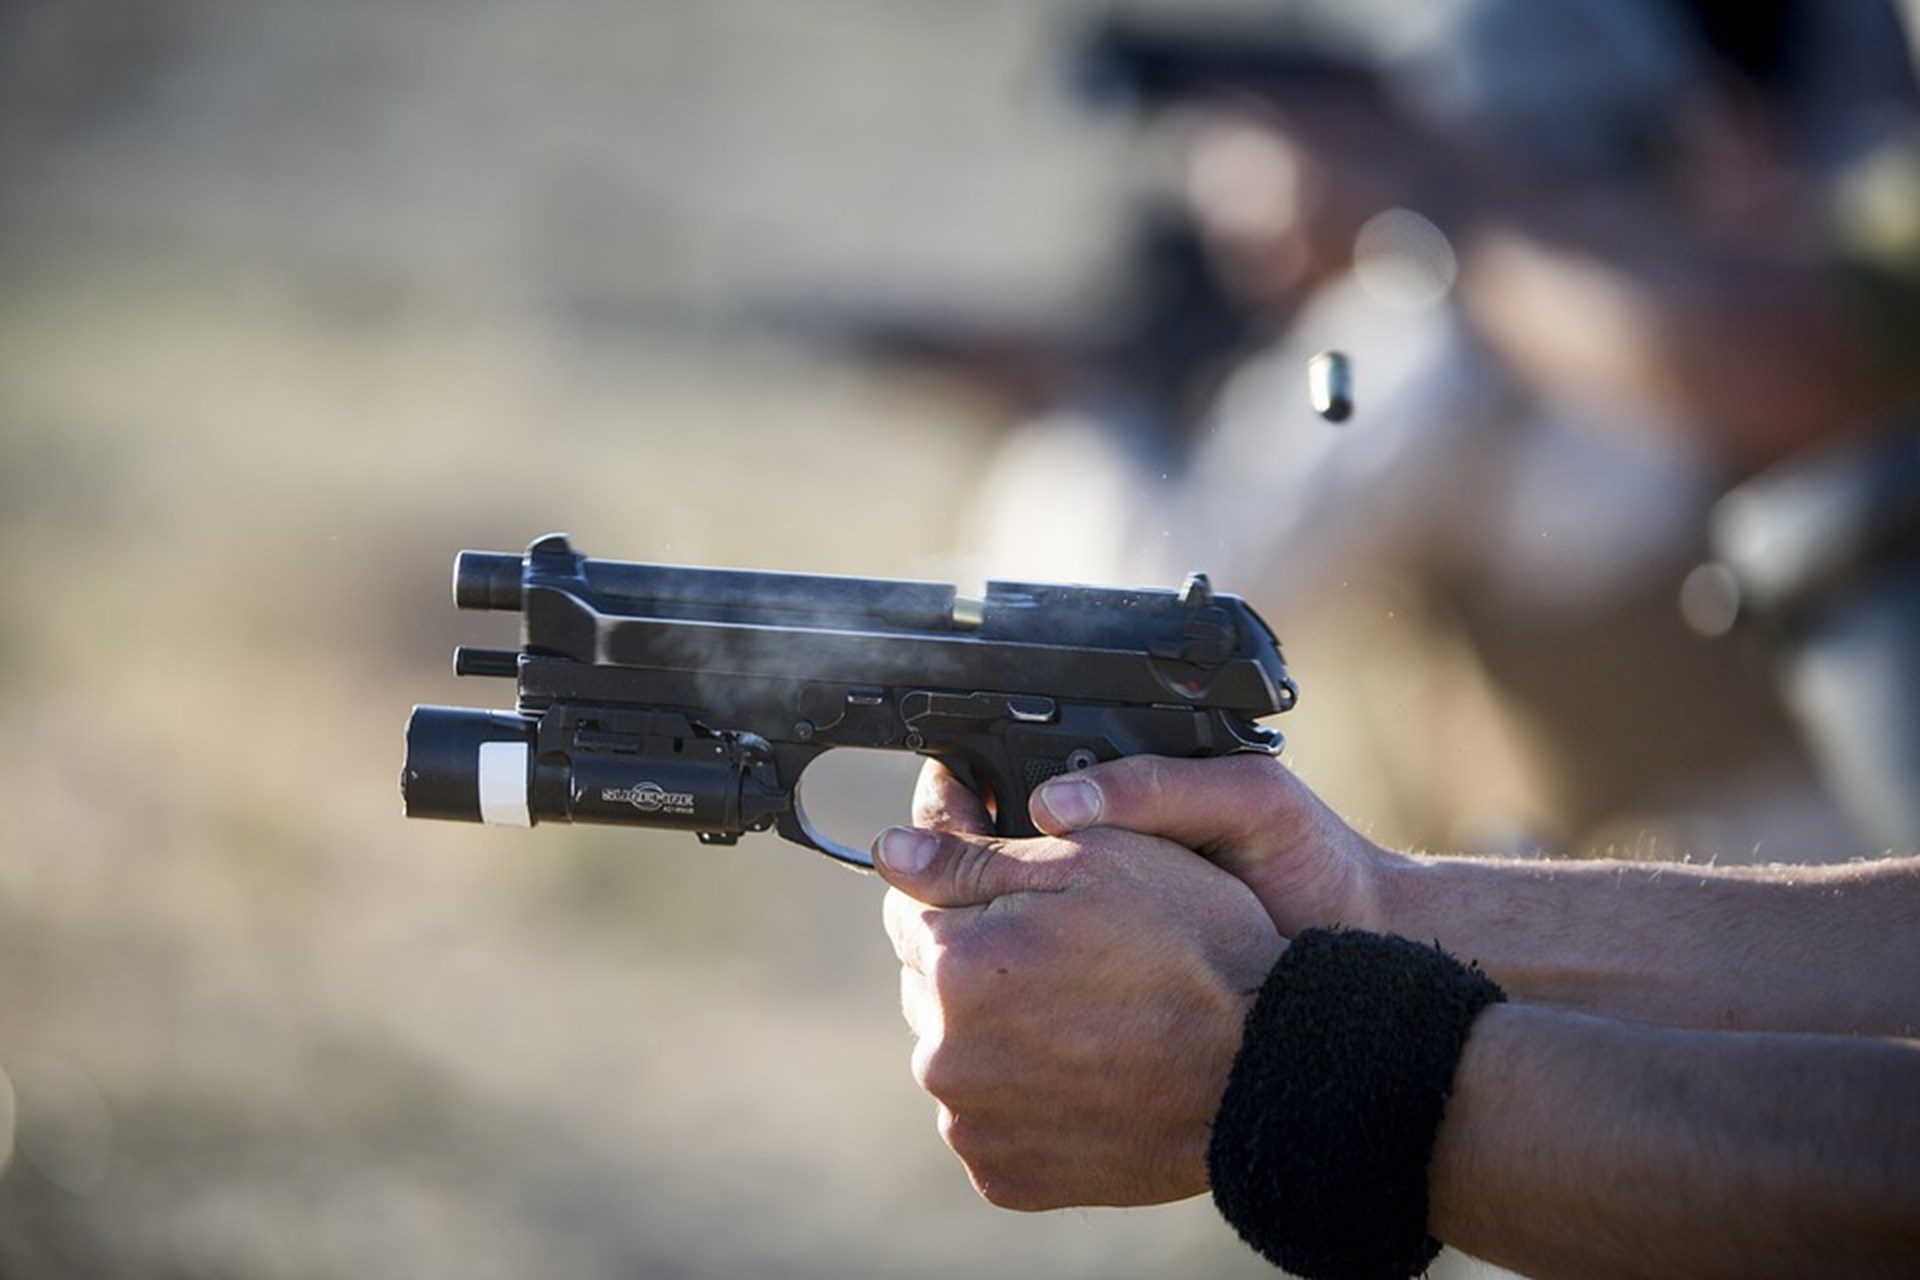 California's Background Check Law Had No Impact on Gun Deaths, Johns Hopkins Study Finds